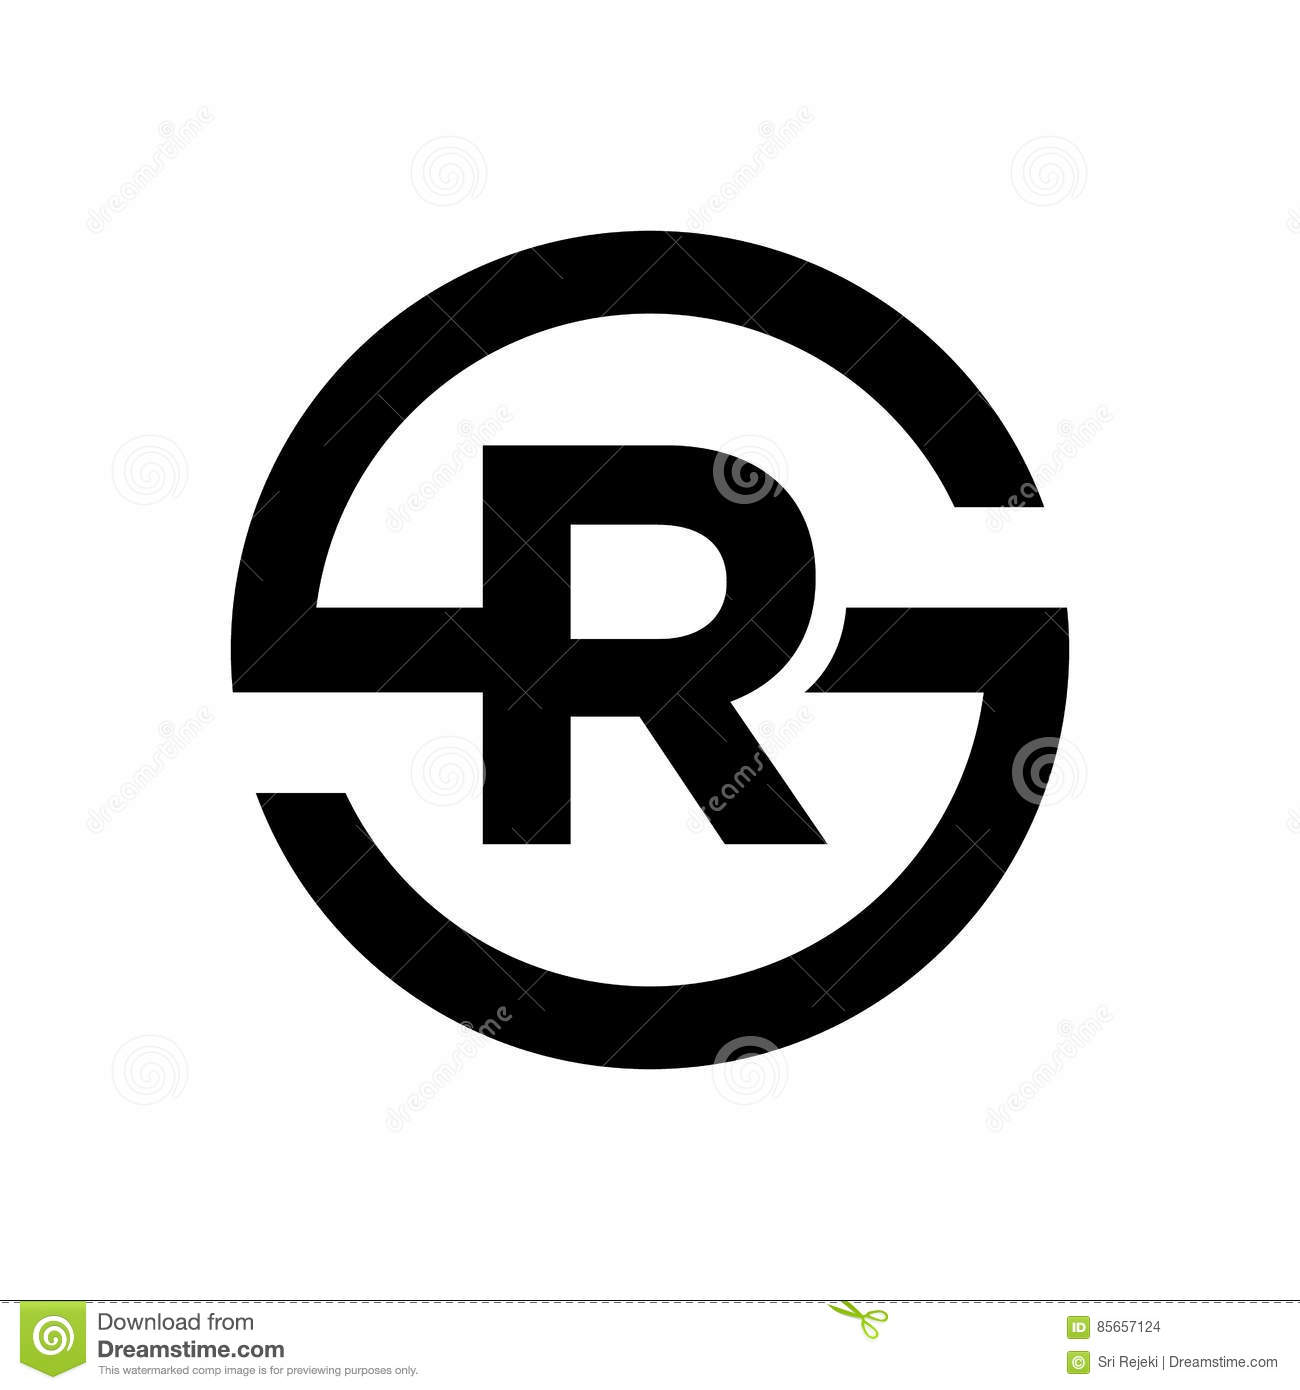 Trademark r symbol choice image symbol and sign ideas letter s symbol combination with r stock vector illustration of letter s symbol combination with r biocorpaavc Image collections